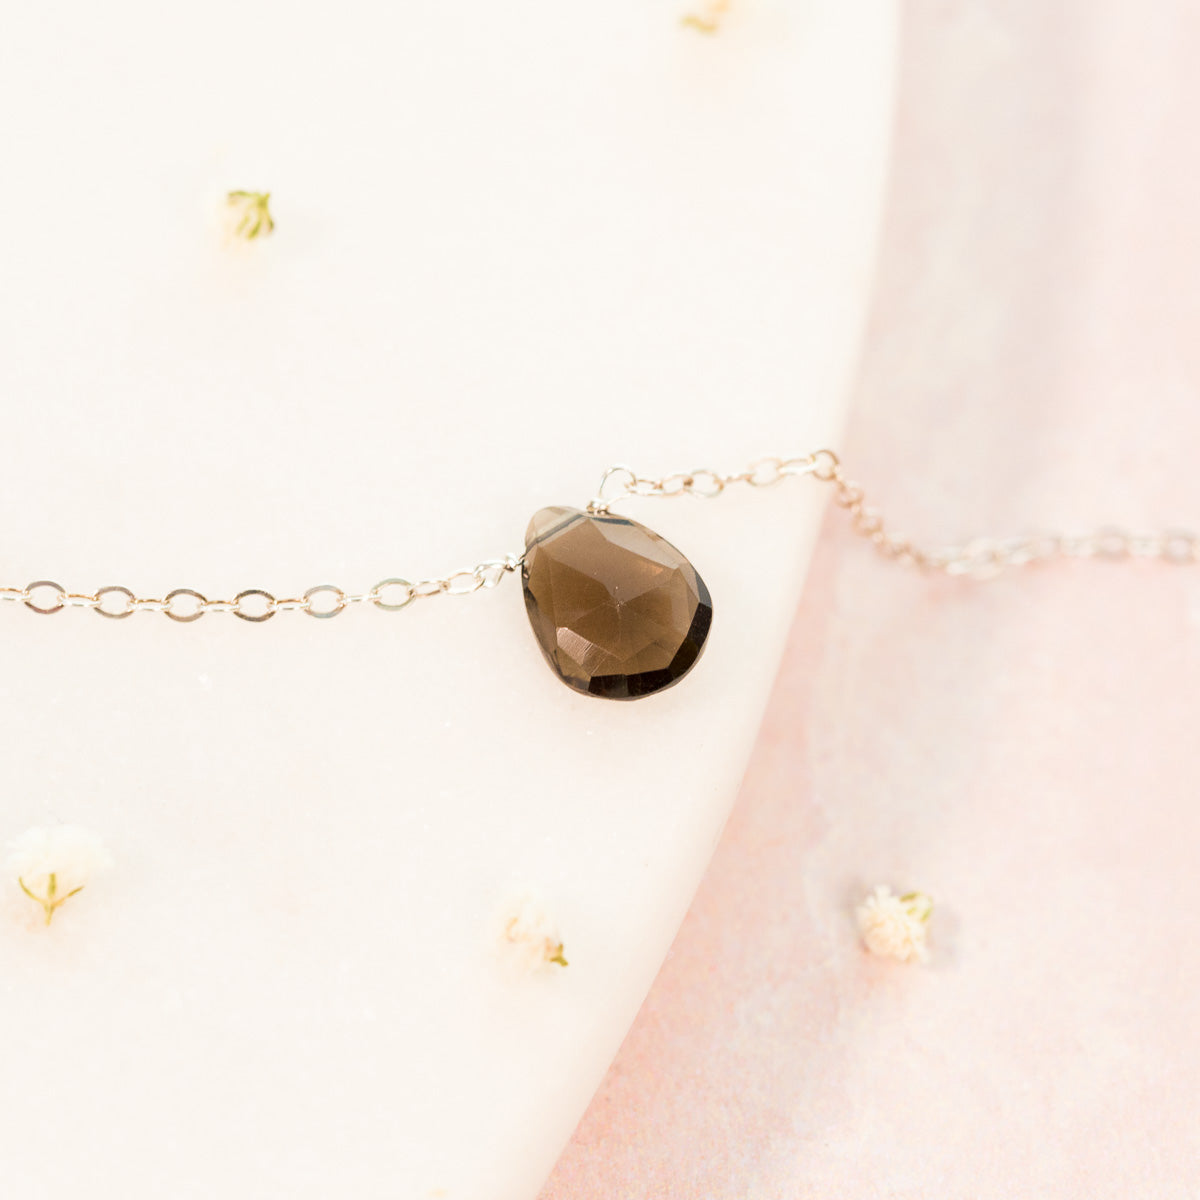 Smoky Quartz Necklace Teardrop Necklace Collection Liz.Beth Jewelry Co.